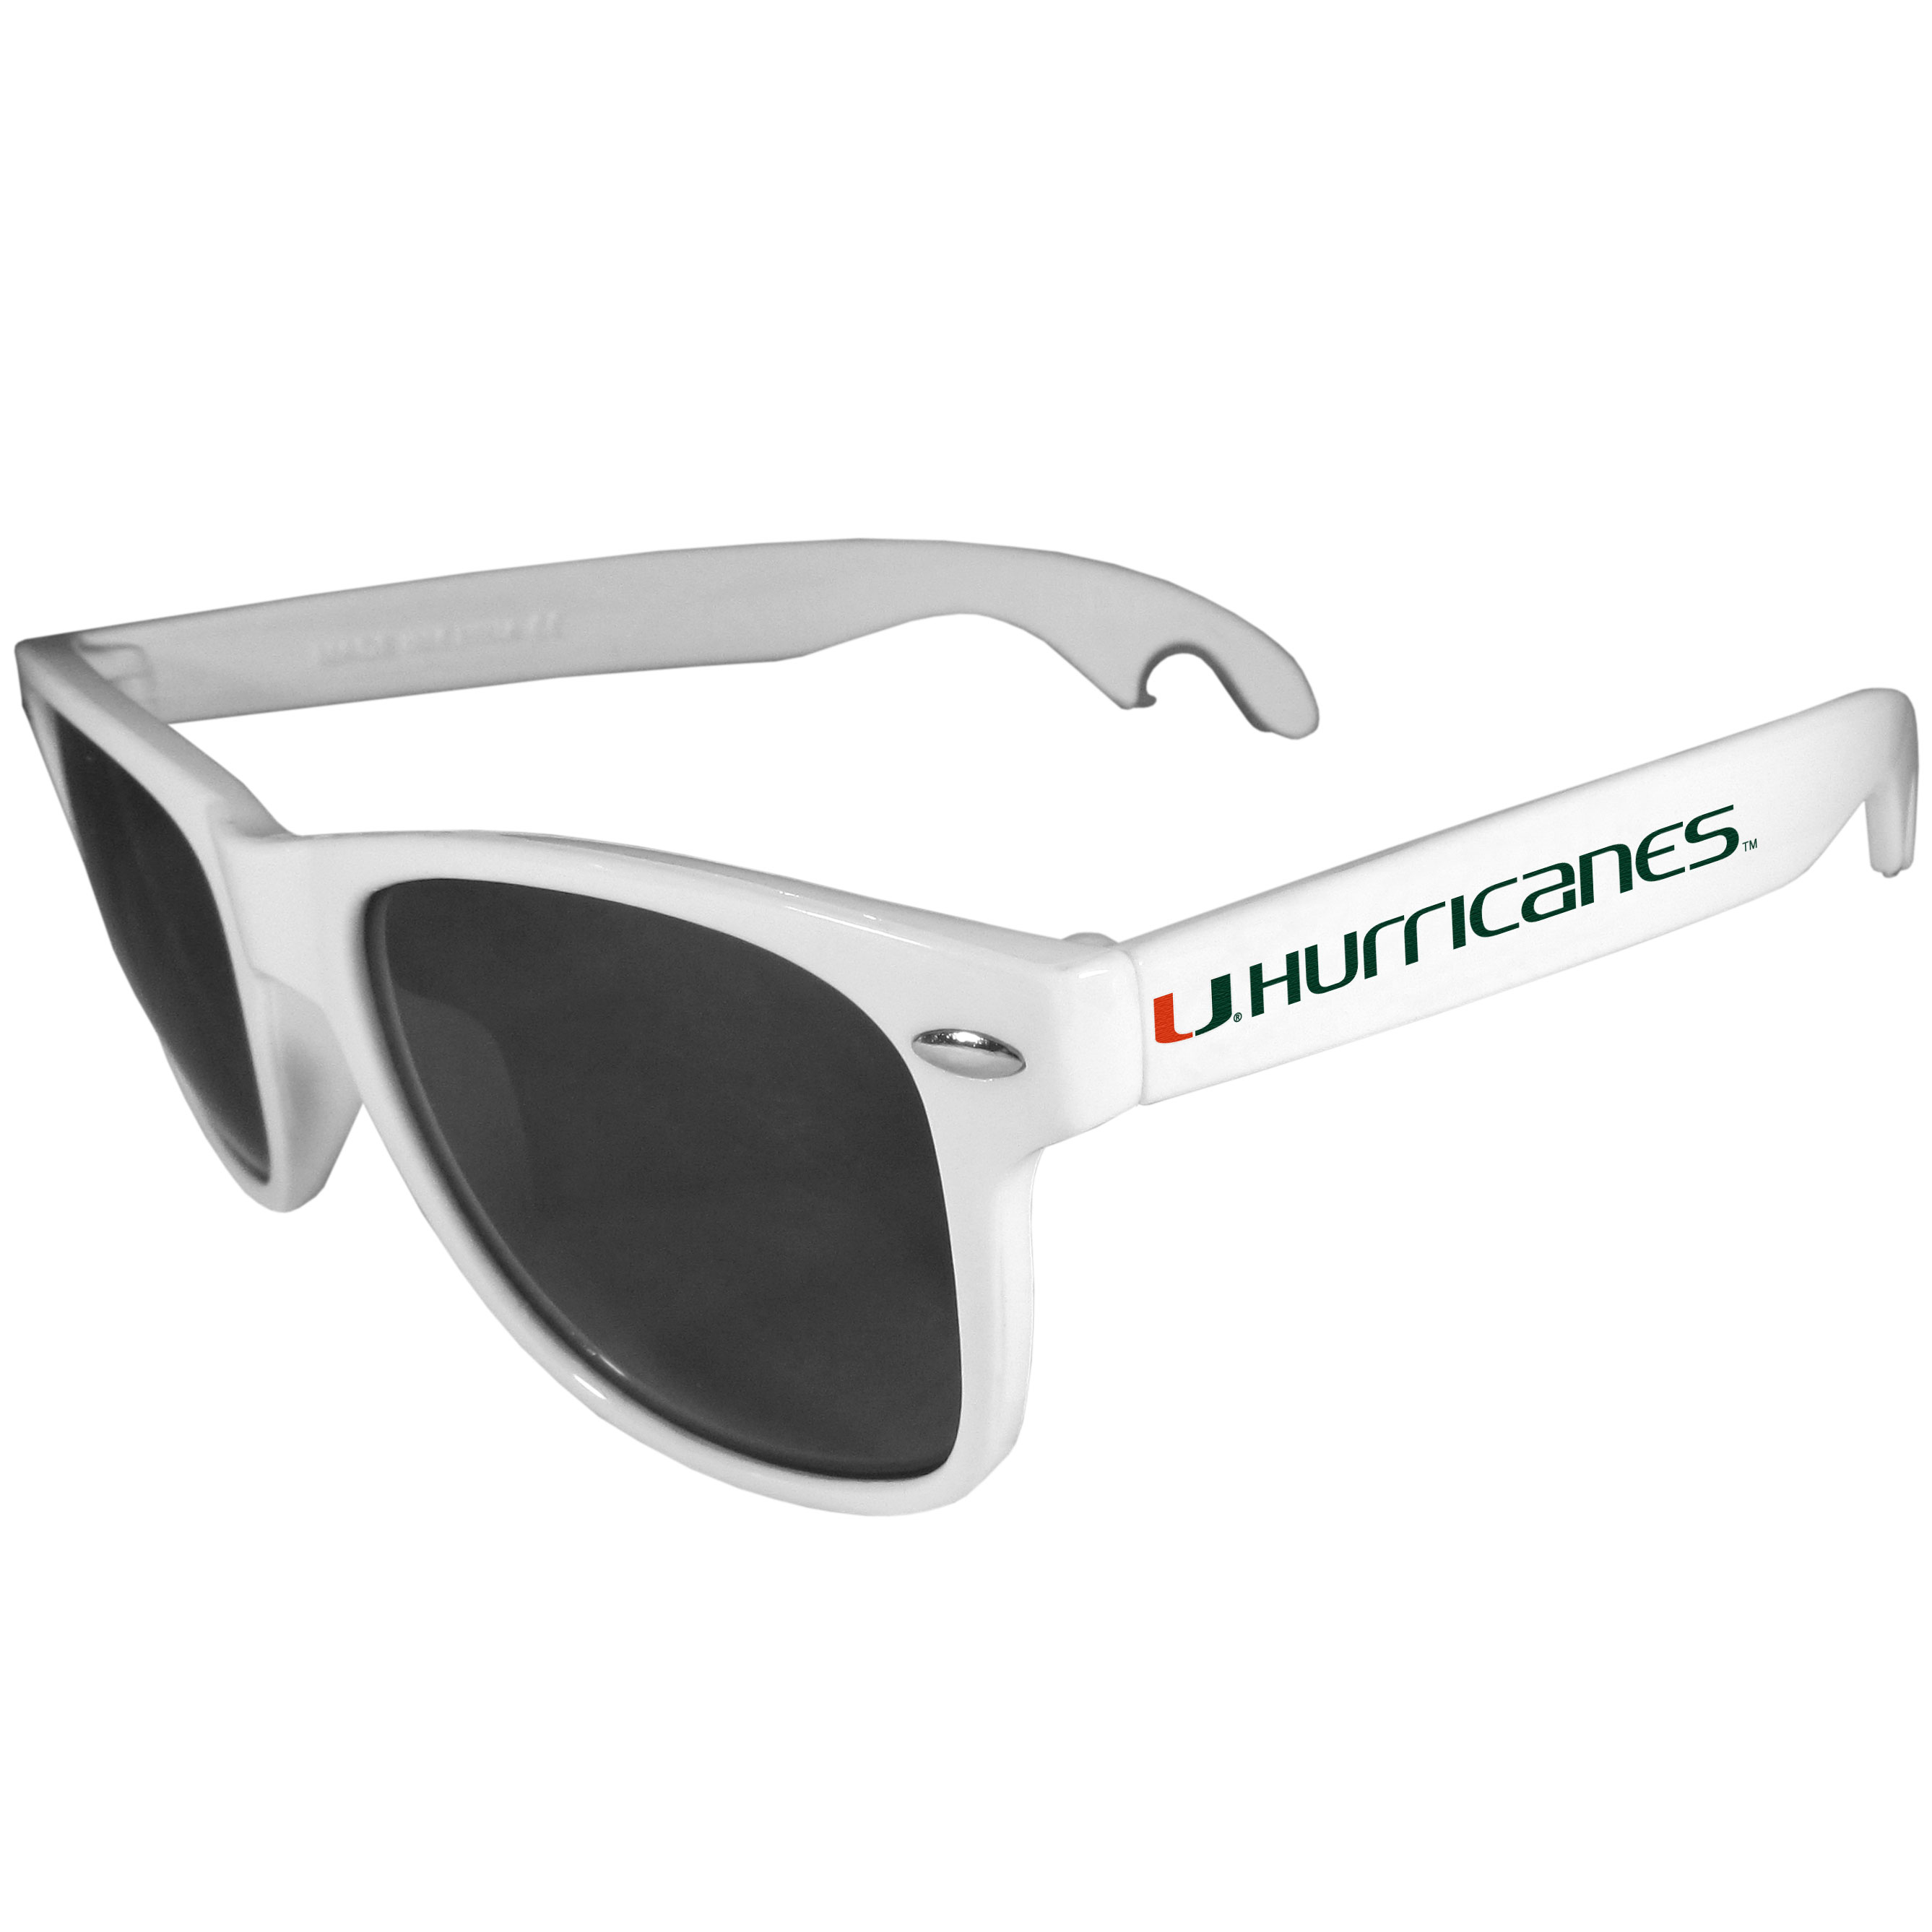 Miami Hurricanes Beachfarer Bottle Opener Sunglasses, White - Seriously, these sunglasses open bottles! Keep the party going with these amazing Miami Hurricanes bottle opener sunglasses. The stylish retro frames feature team designs on the arms and functional bottle openers on the end of the arms. Whether you are at the beach or having a backyard BBQ on game day, these shades will keep your eyes protected with 100% UVA/UVB protection and keep you hydrated with the handy bottle opener arms.